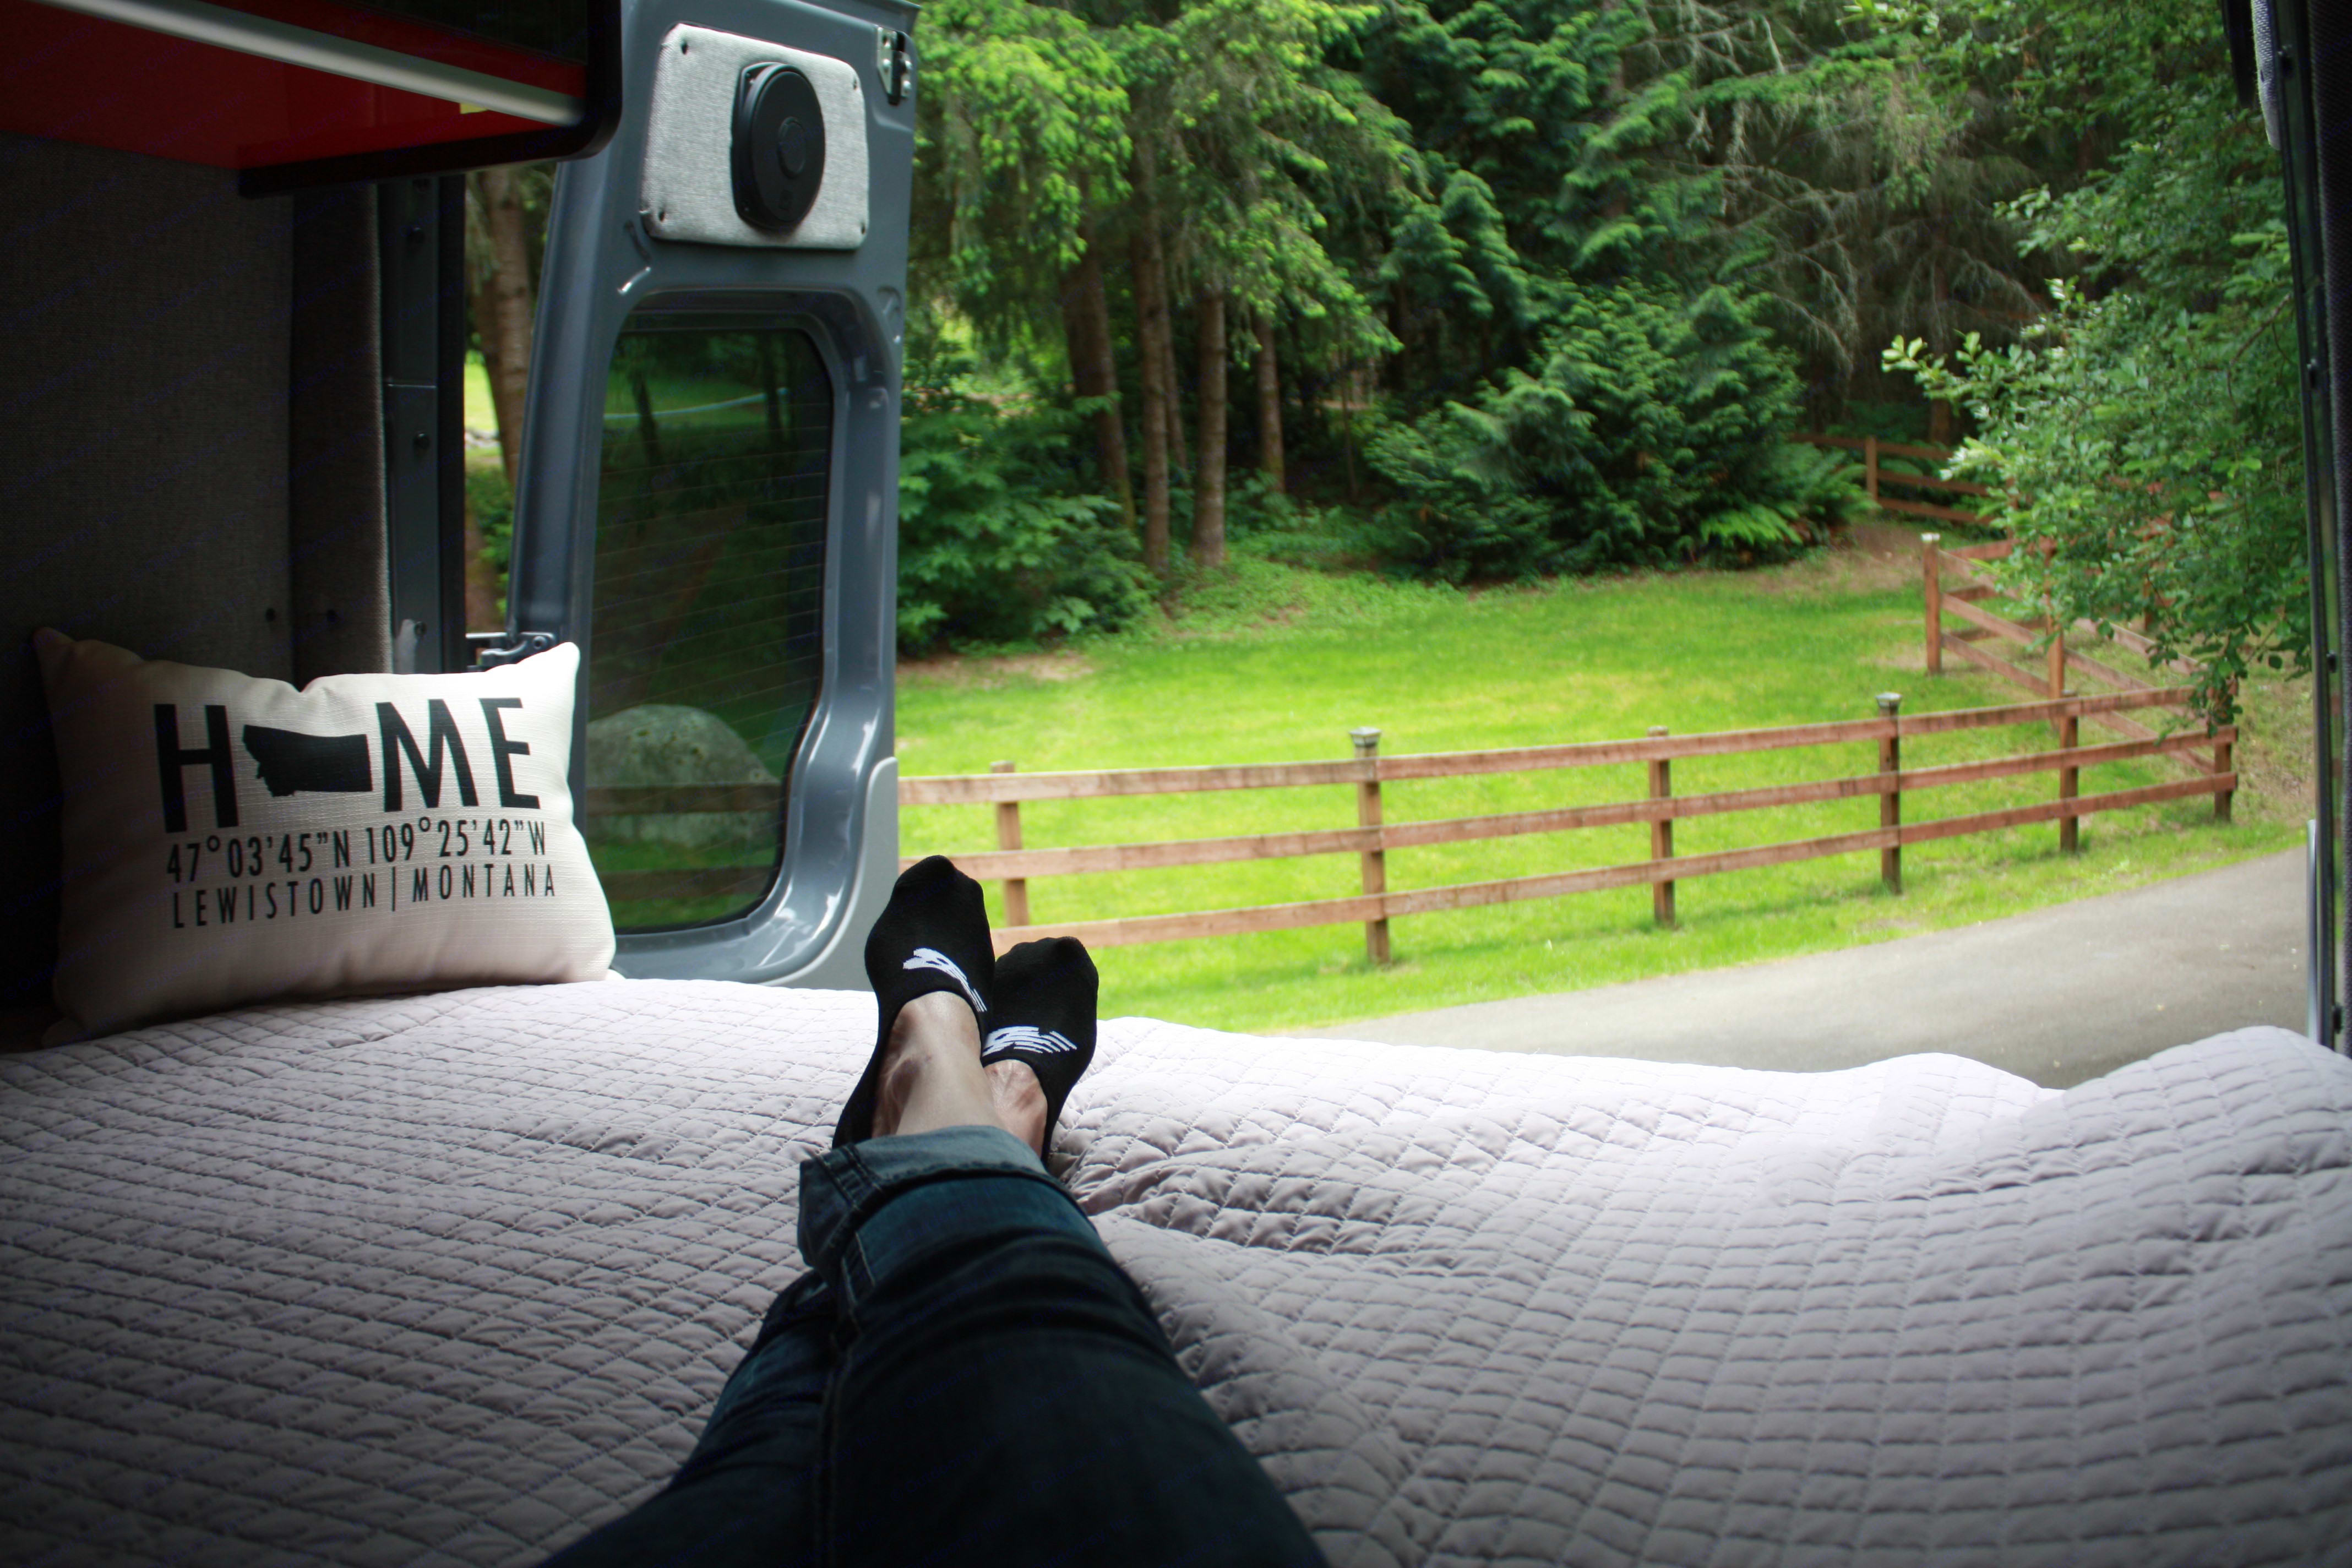 Perfect for reading a book and enjoying the view. Mercedes-Benz Sprinter 2013